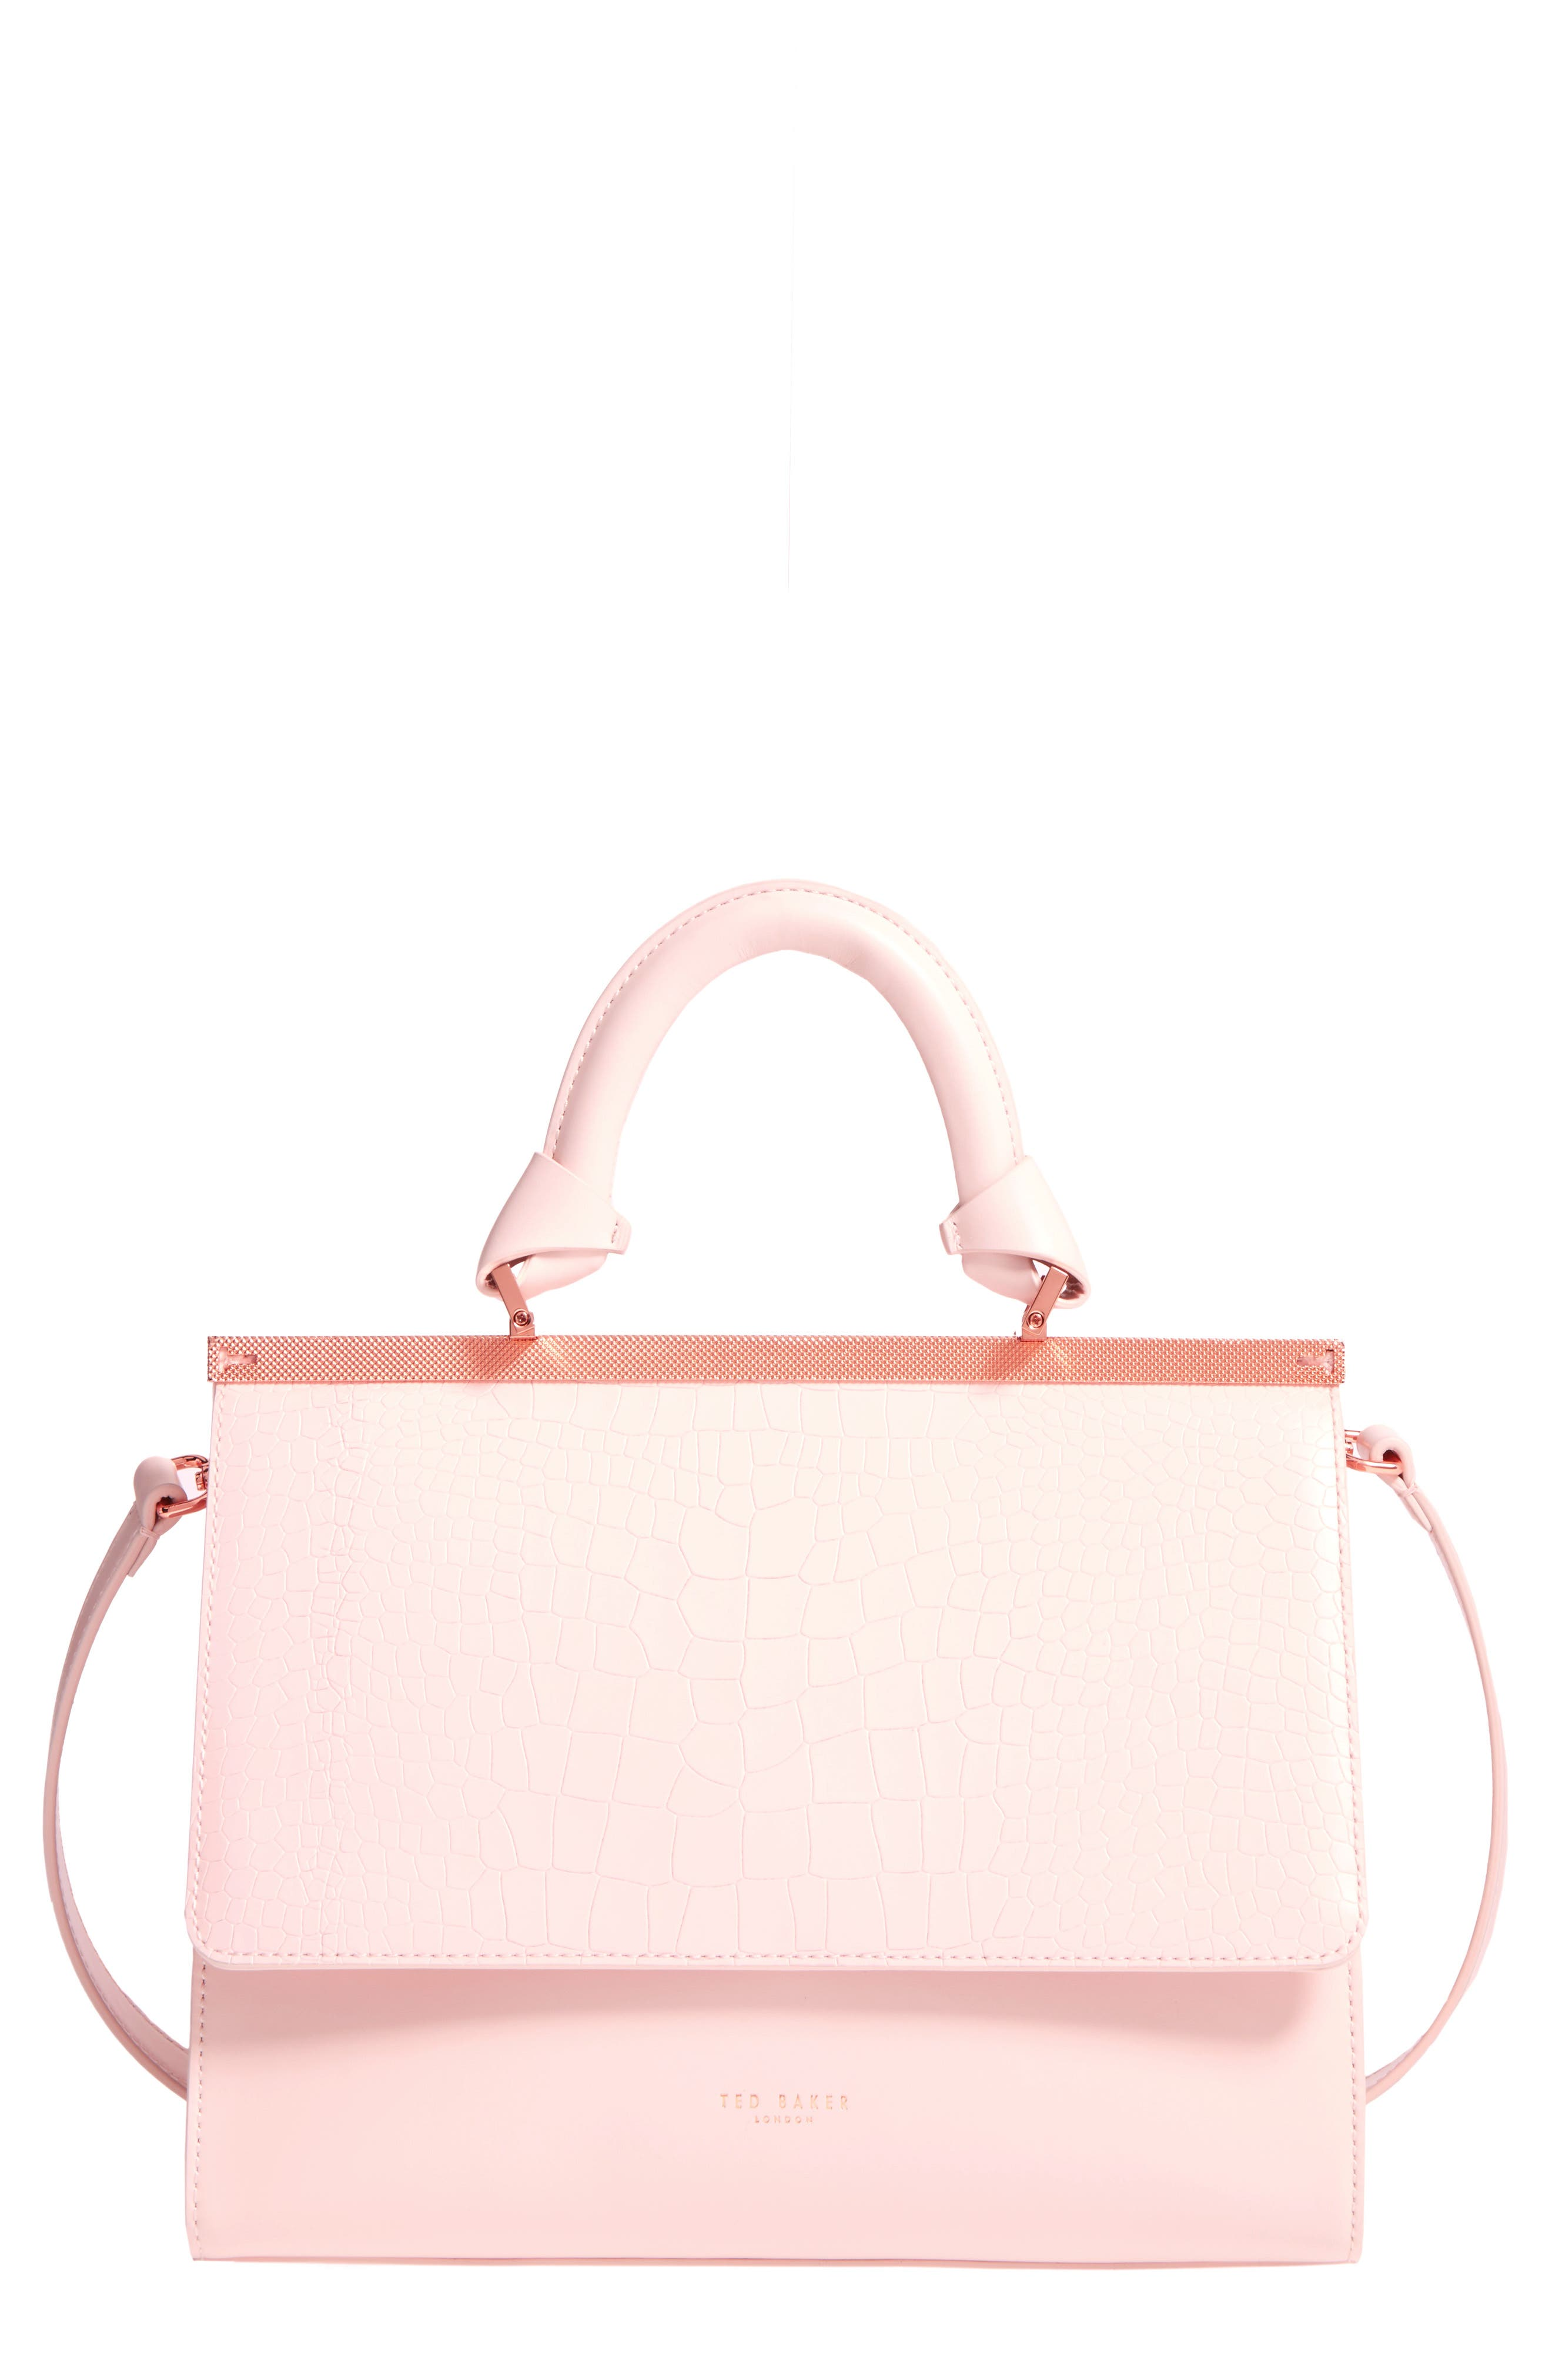 Croc Embossed Leather Satchel,                         Main,                         color, Baby Pink